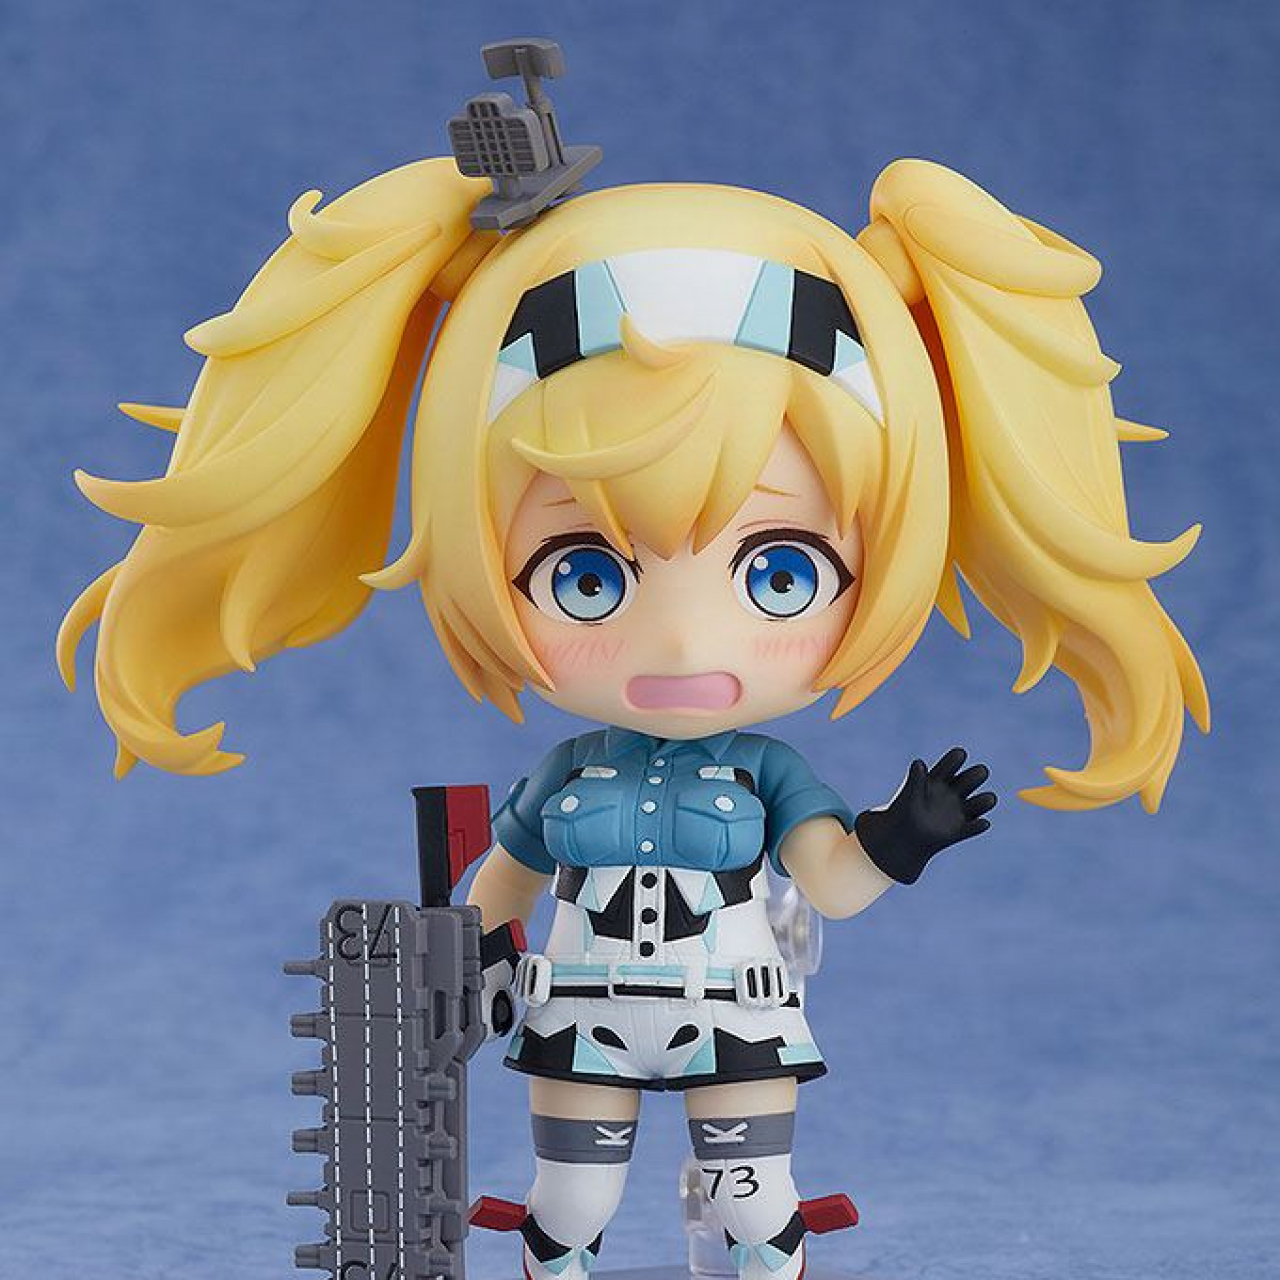 Kantai Collection Nendoroid Action Figure Gambier Bay 10 cm